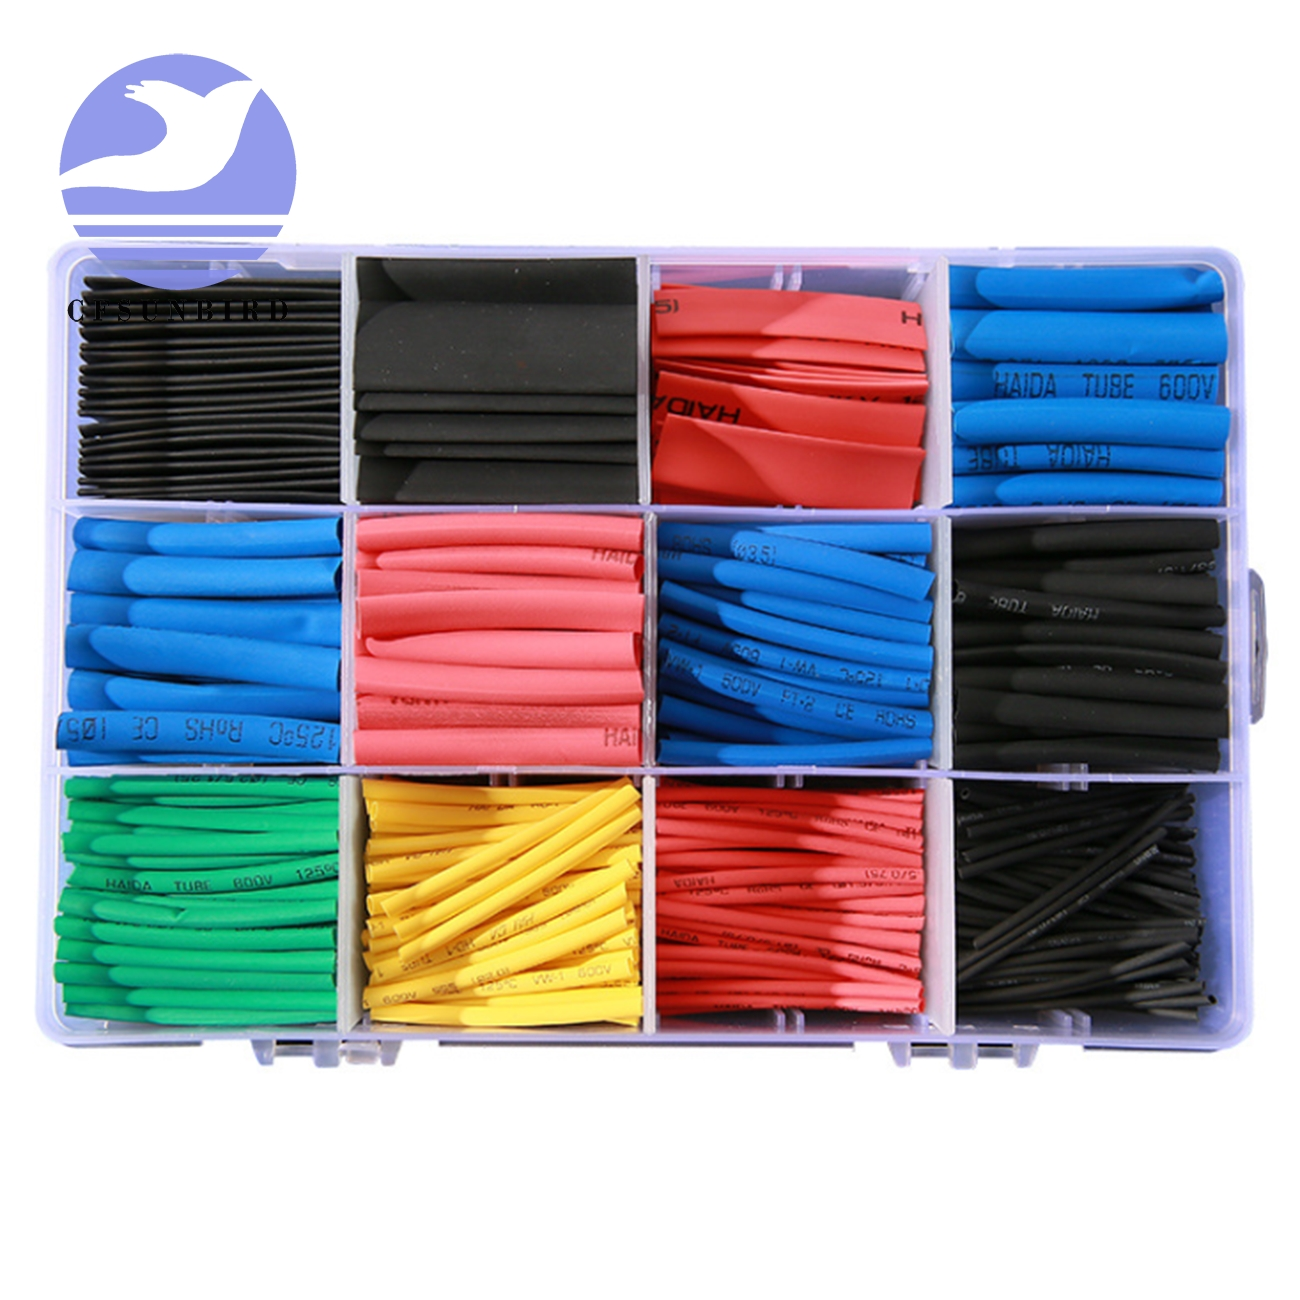 560 Pcs Heat Shrink Tubing 2:1 Electrical Wire Cable Wrap Assortment Electric Insulation Tube Kit With Box